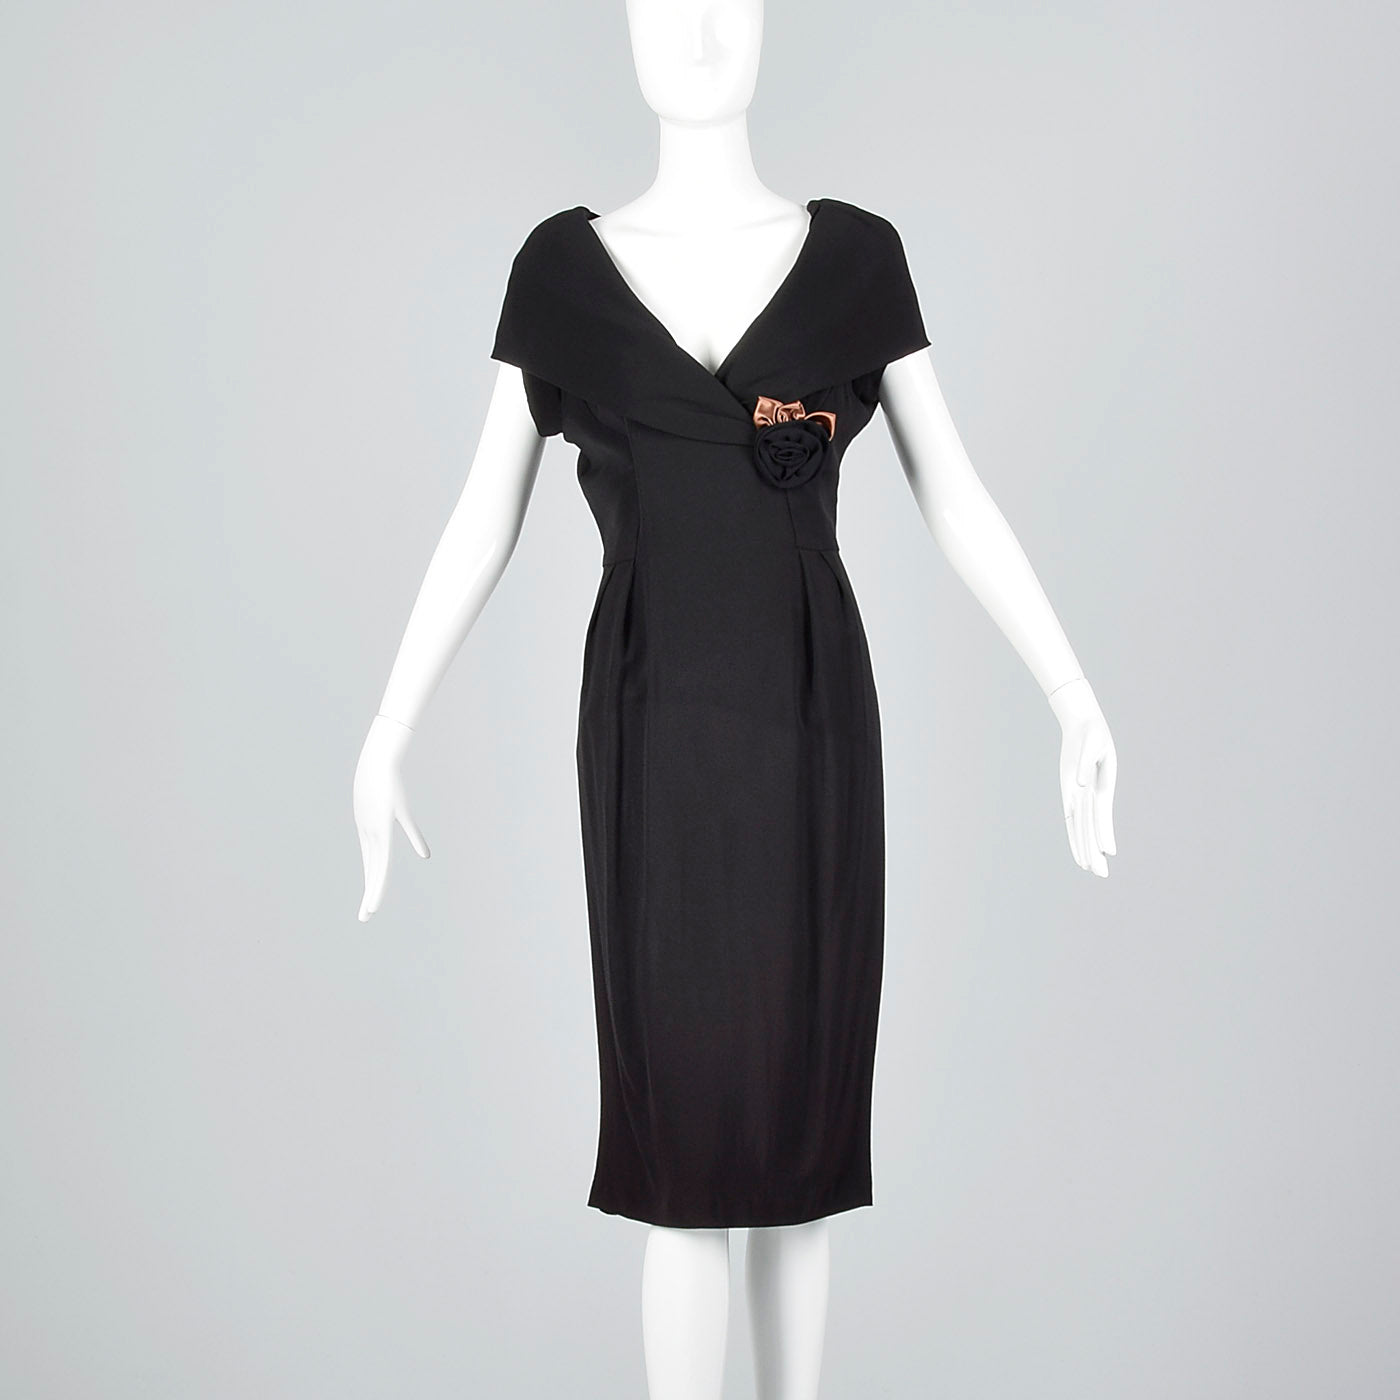 1950s Black Dress with Shawl Collar and Low Cut Front